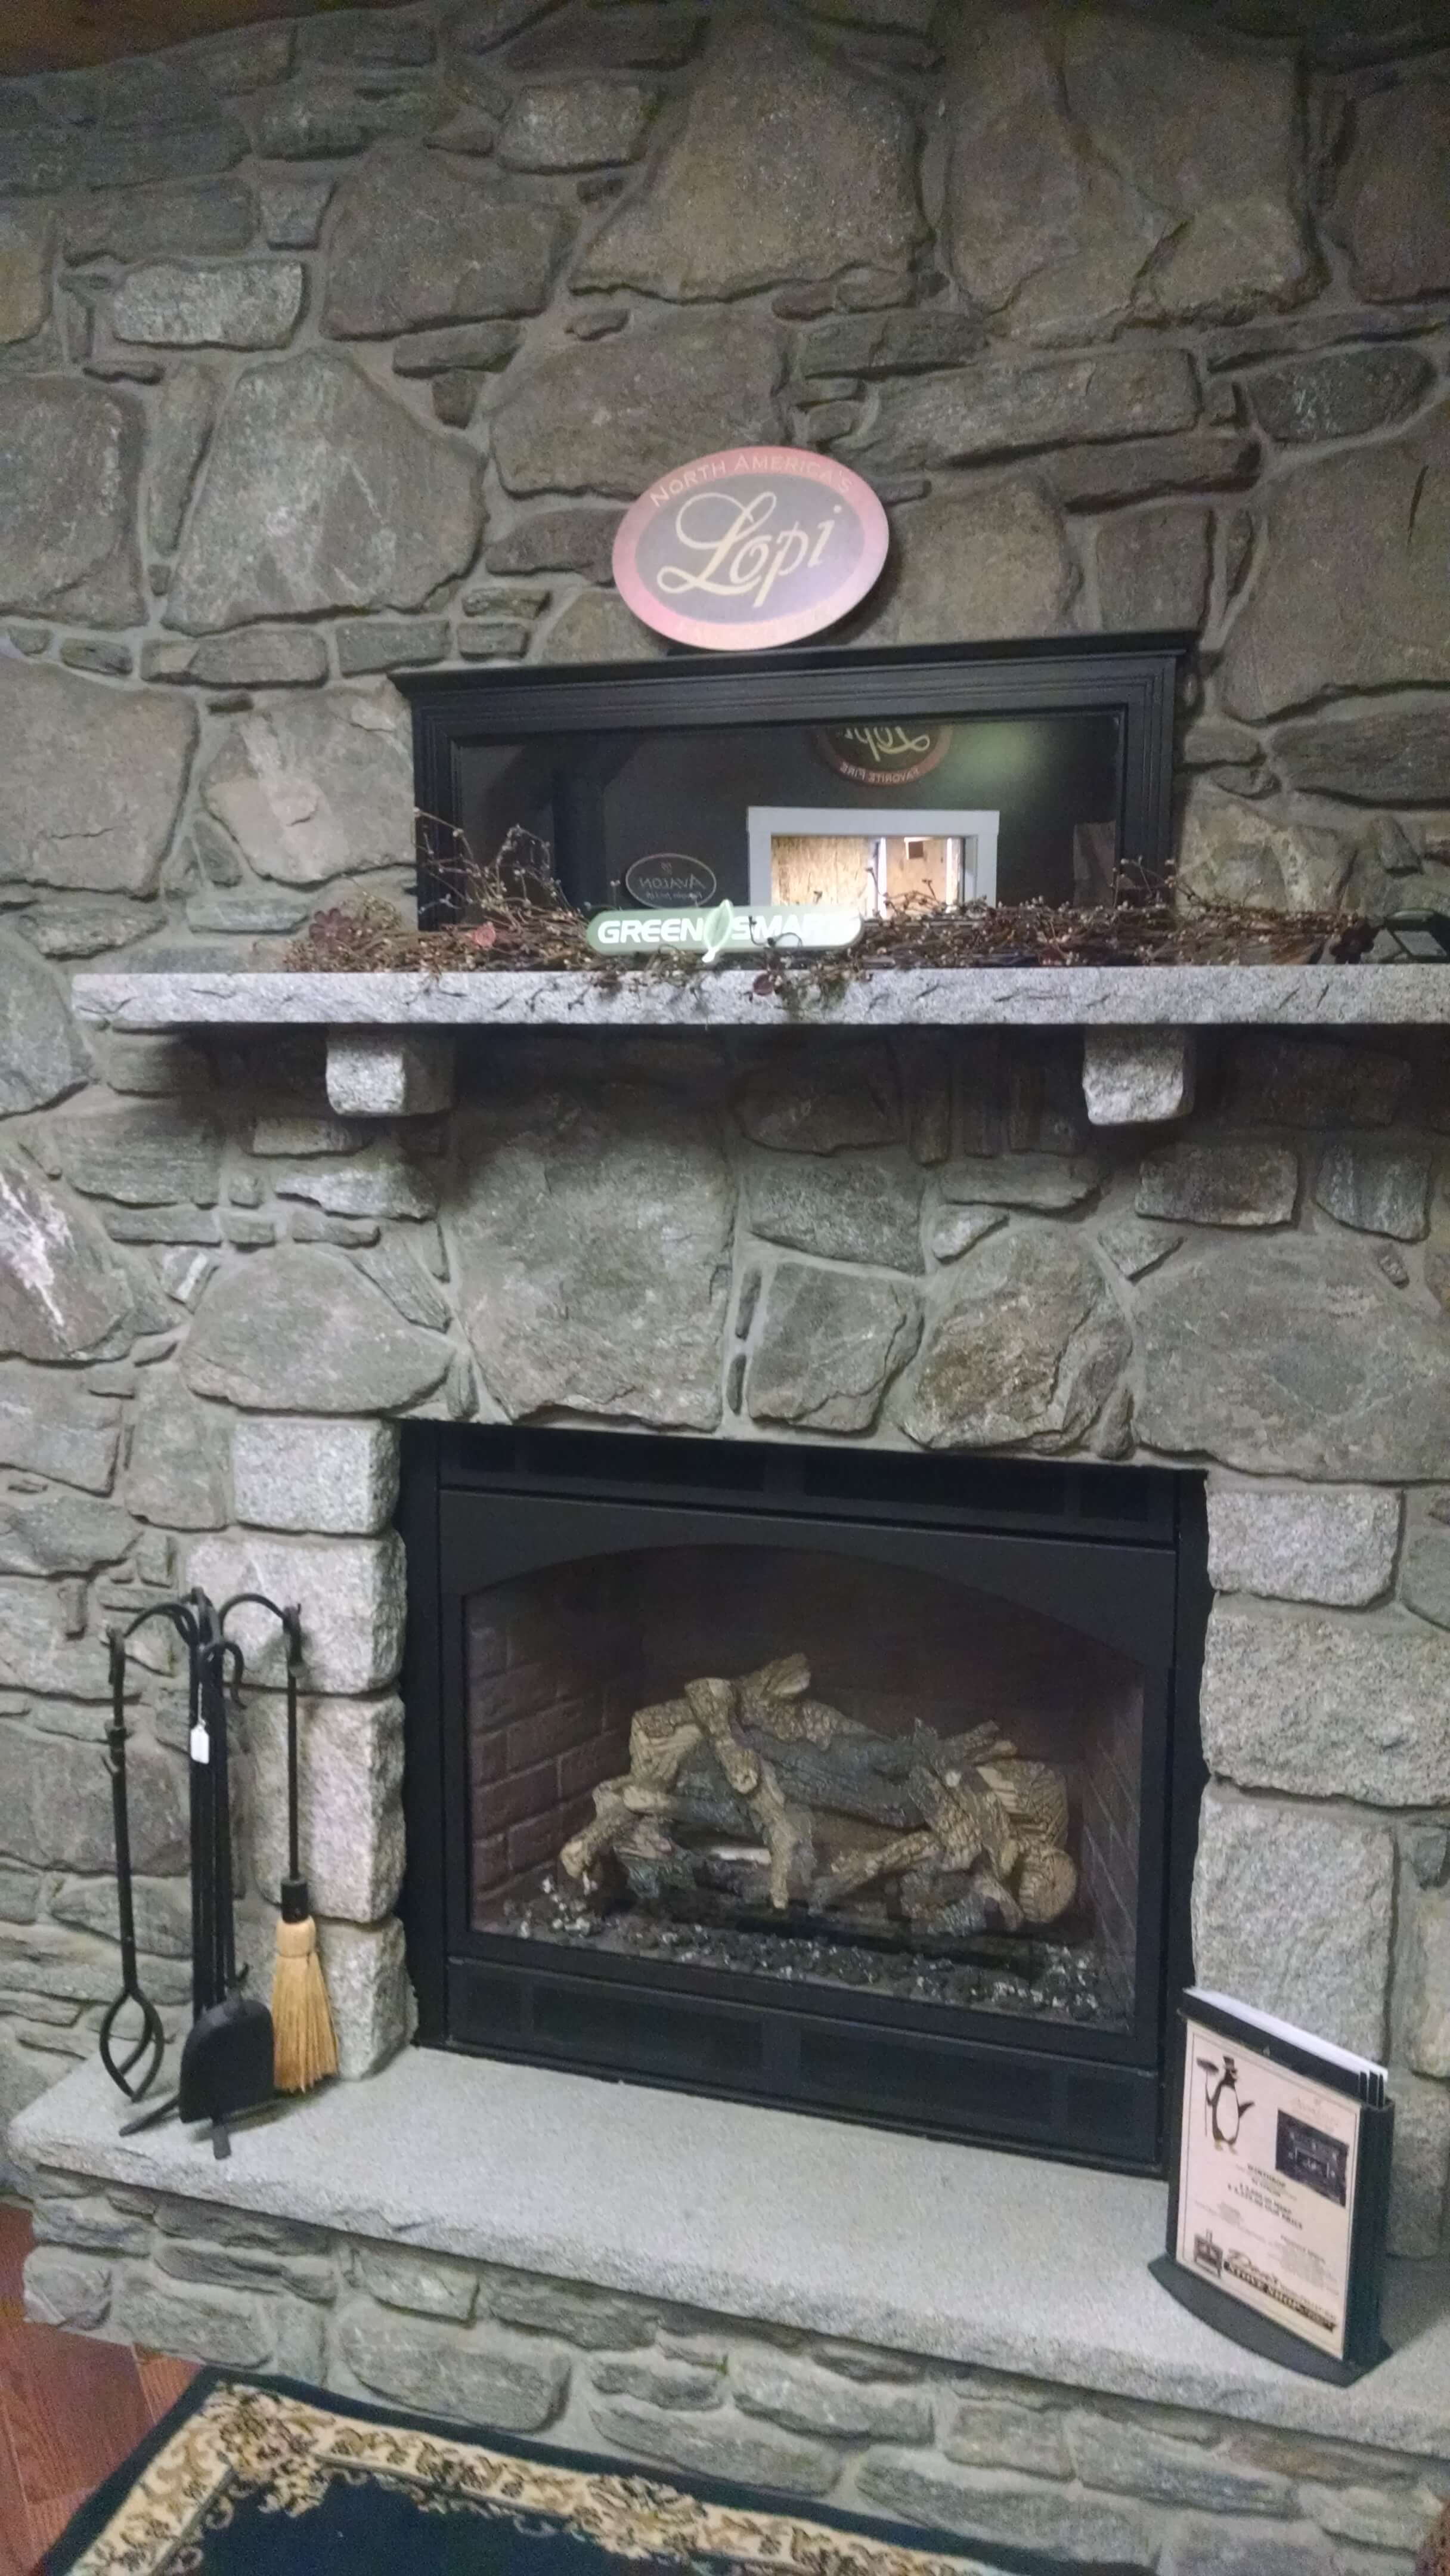 Display Stove in Store